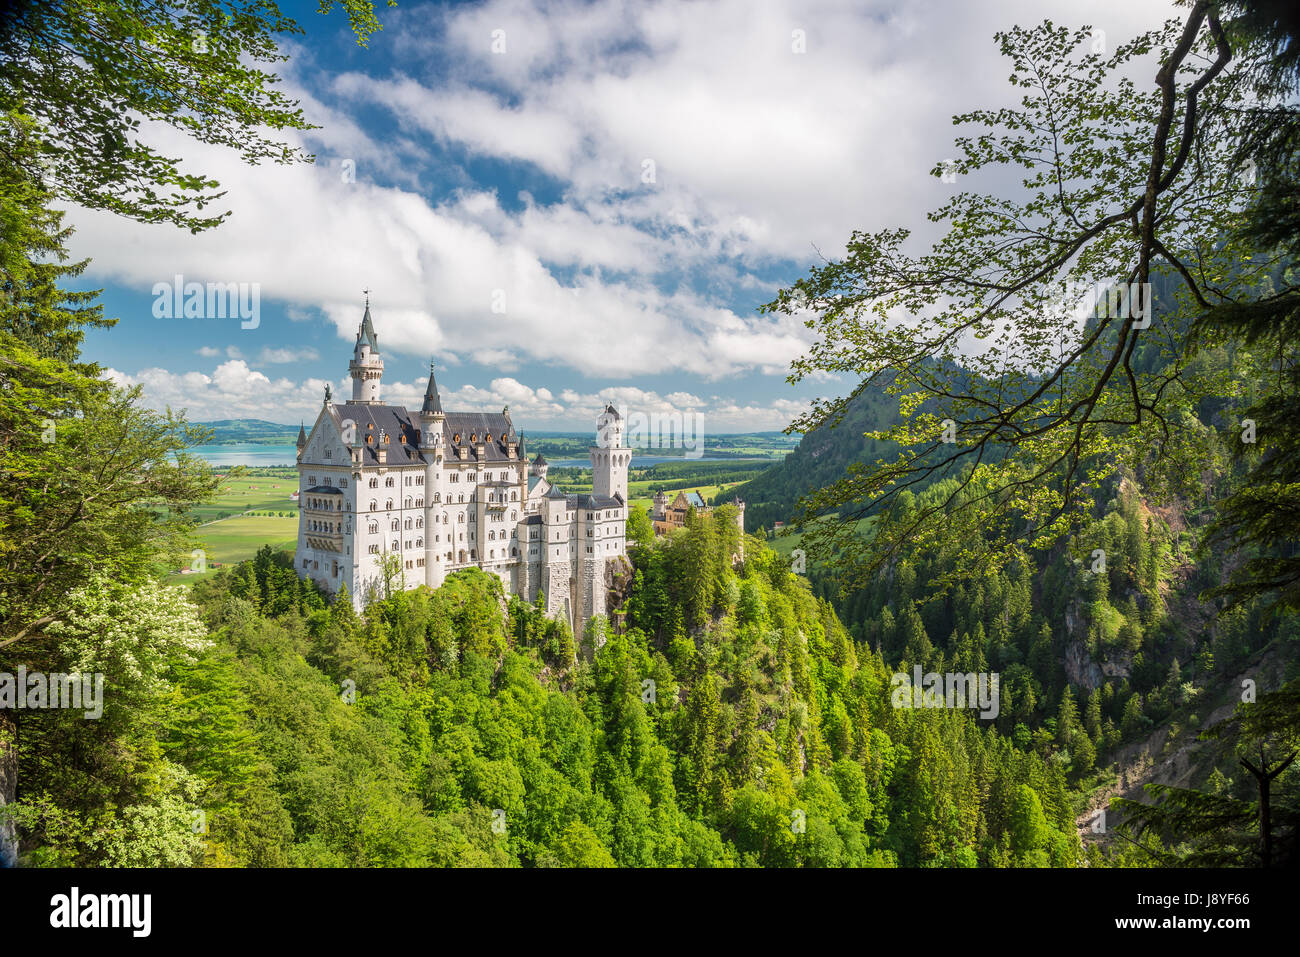 Picturesque landscape with the Neuschwanstein Castle. Germany. - Stock Image